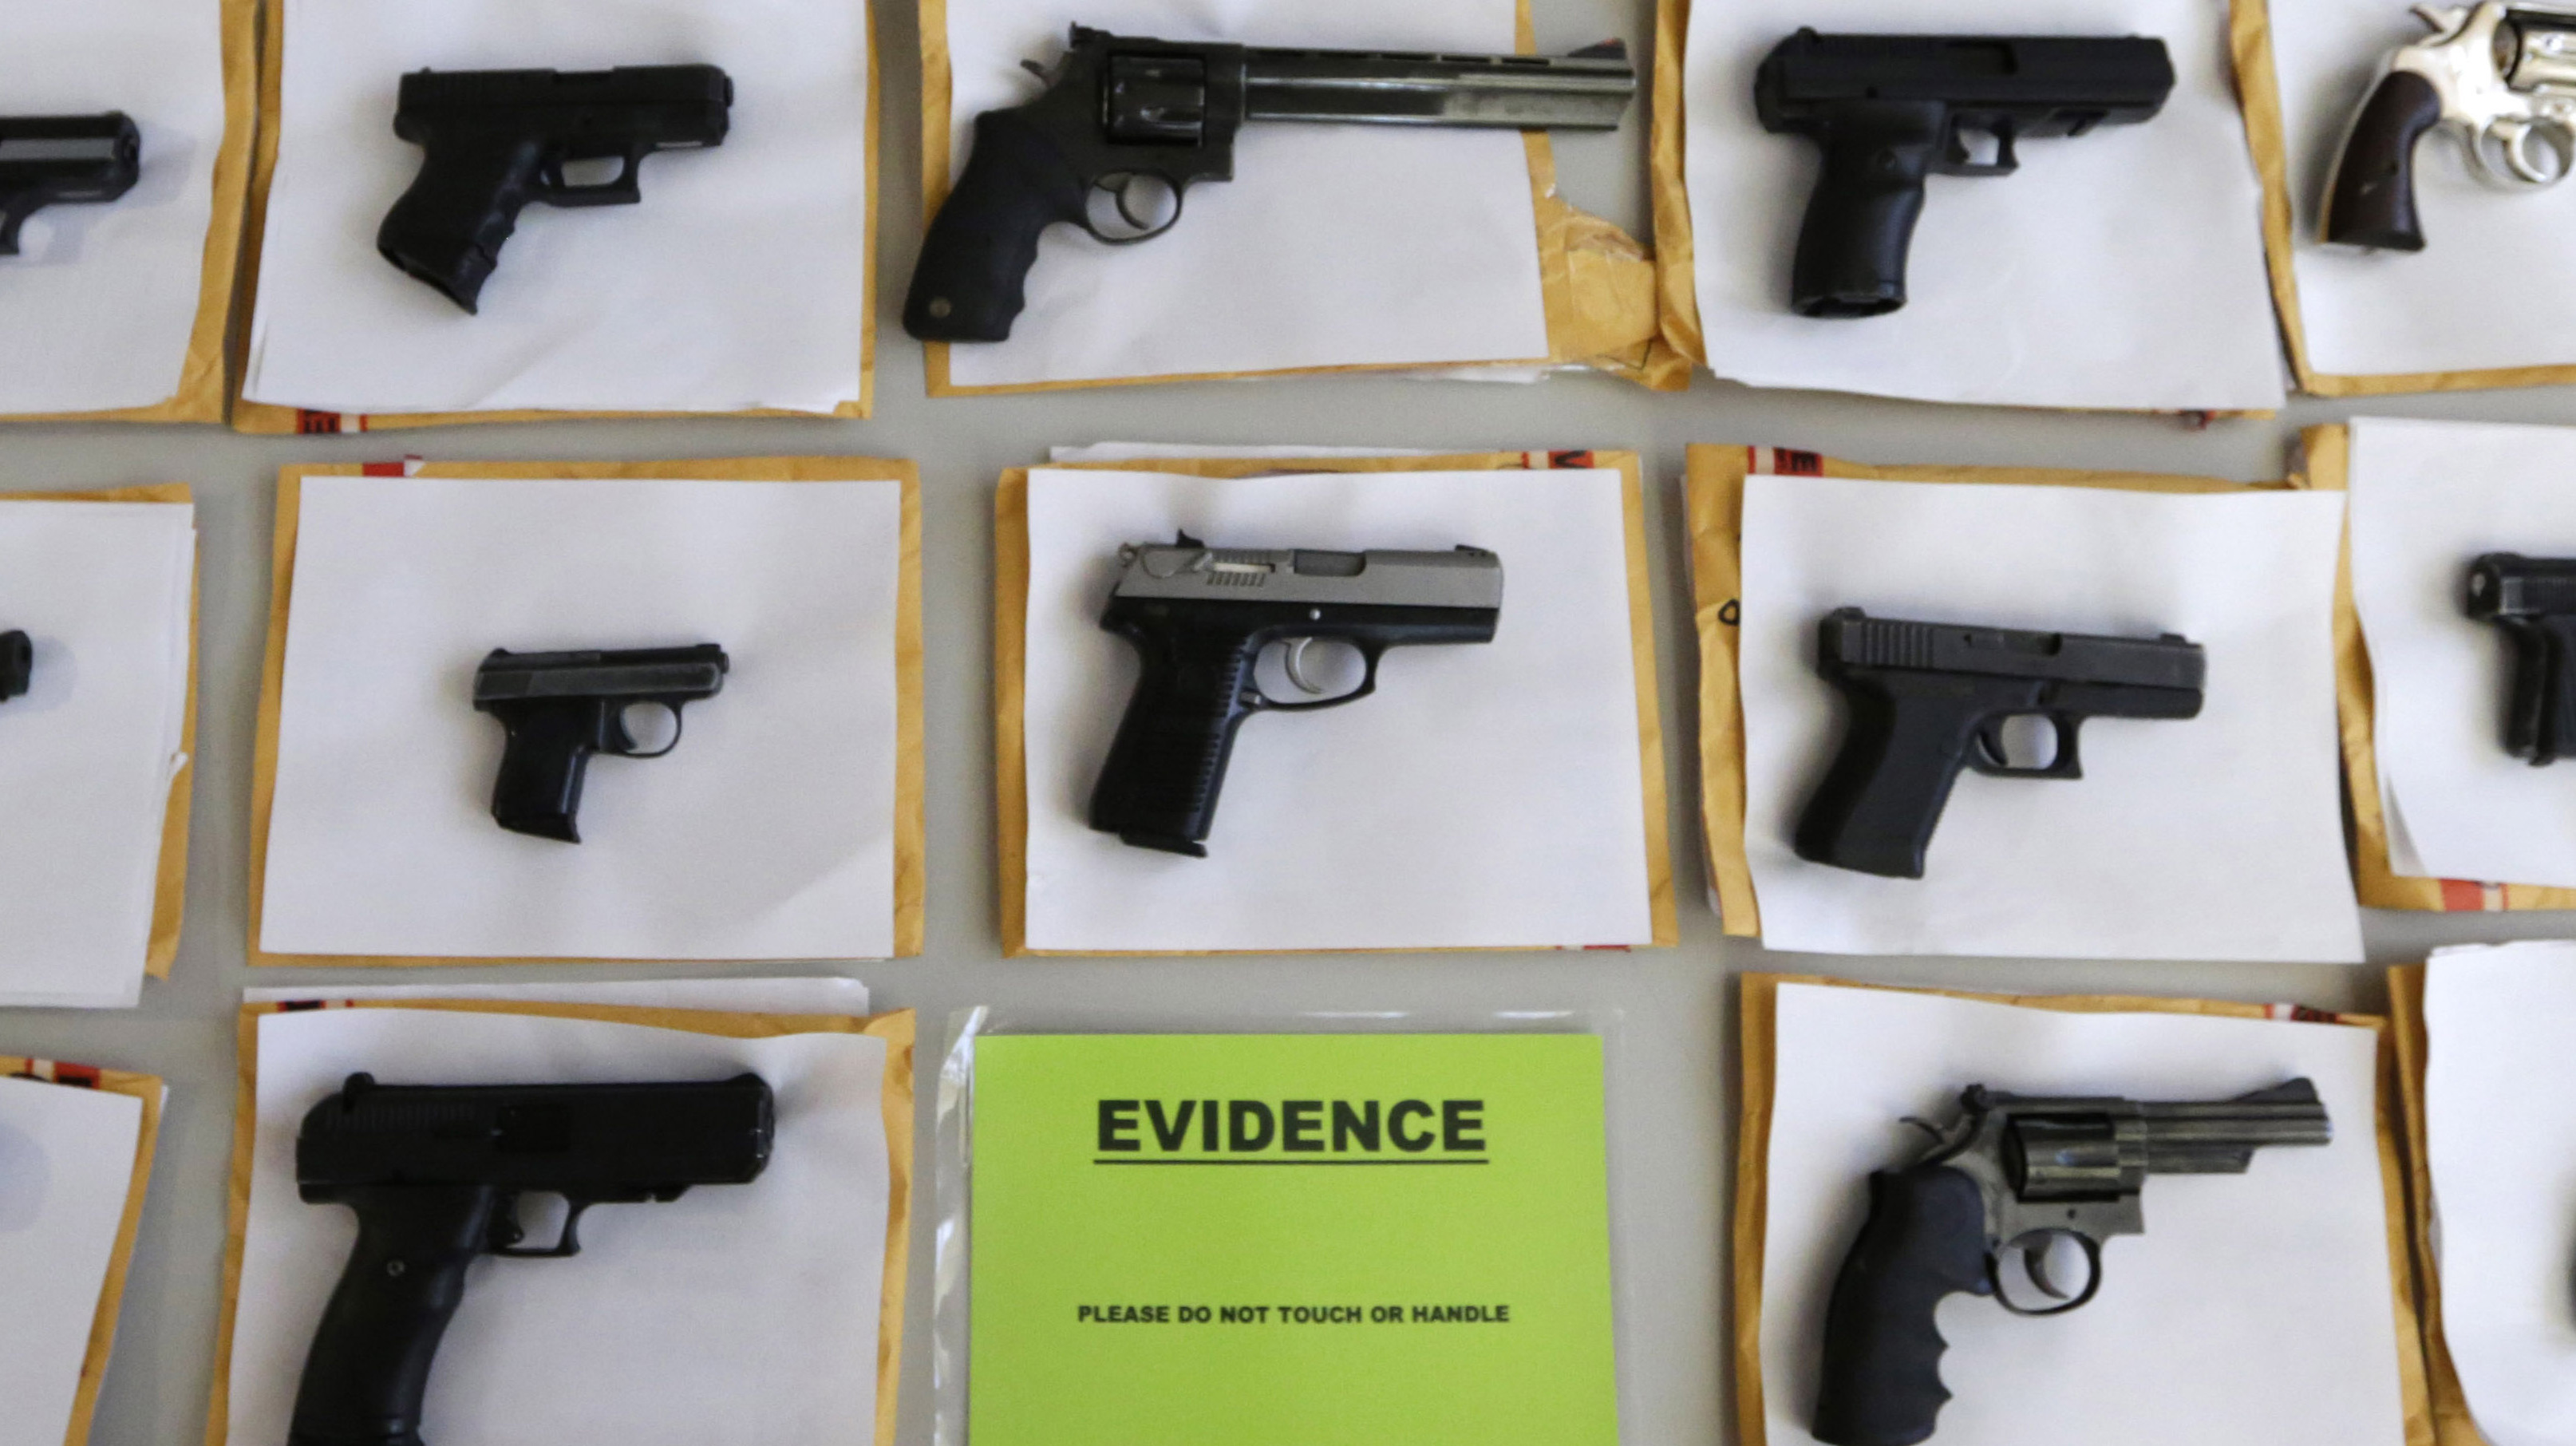 At a news conference last week, Chicago police officials displayed some of the nearly 3,400 illegal firearms they have confiscated so far this year in their efforts to reduce gun violence. Eighty people were shot in Chicago over the three-day Fourth of July weekend.